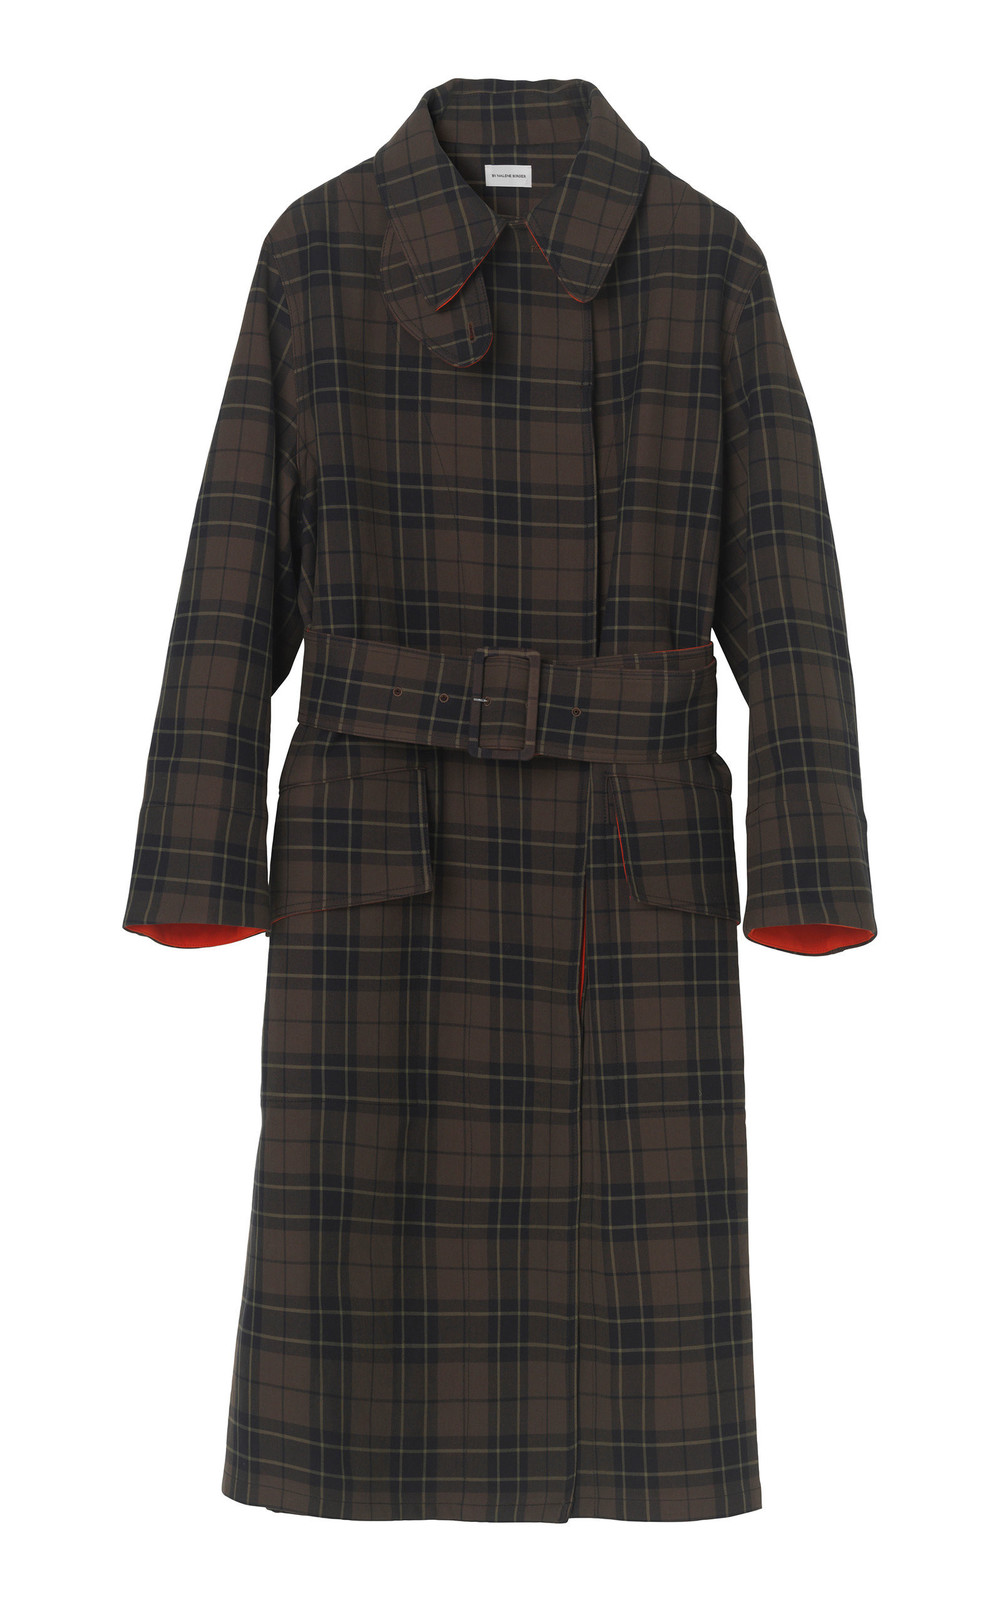 By Malene Birger Bourdon Checkered Coats in print